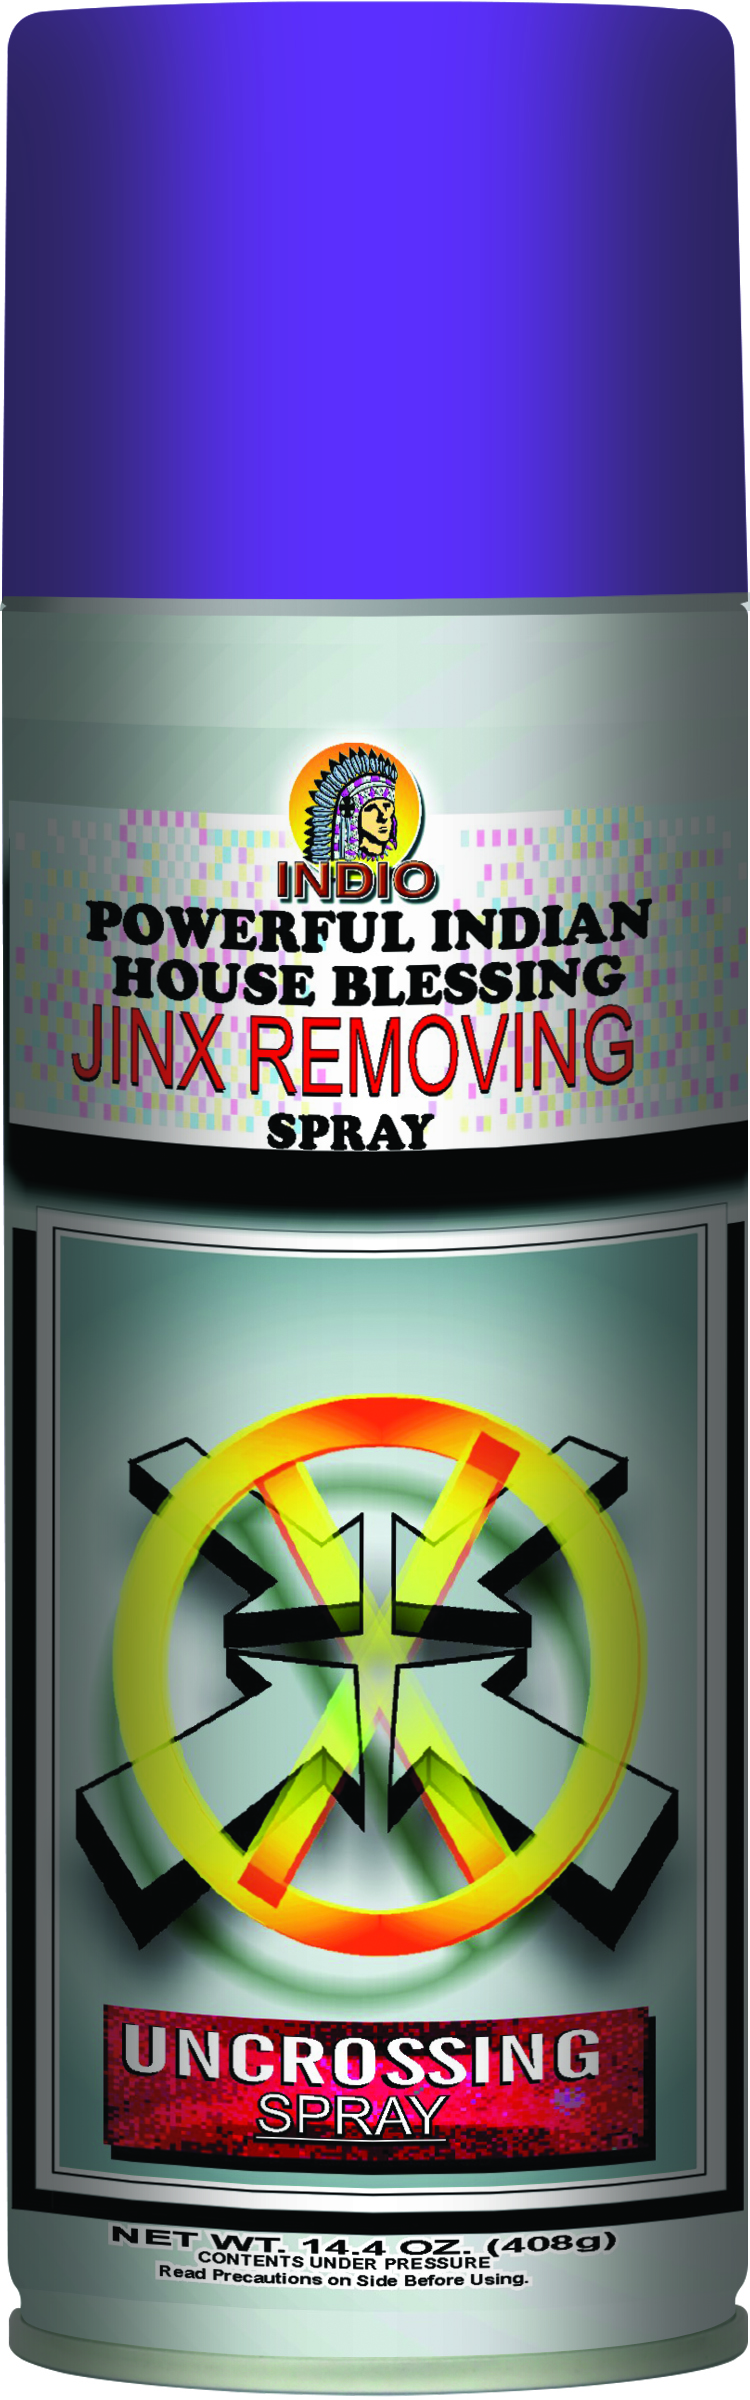 INDIO AEROSOL SPRAY JINX REMOVING/UNCROSSING